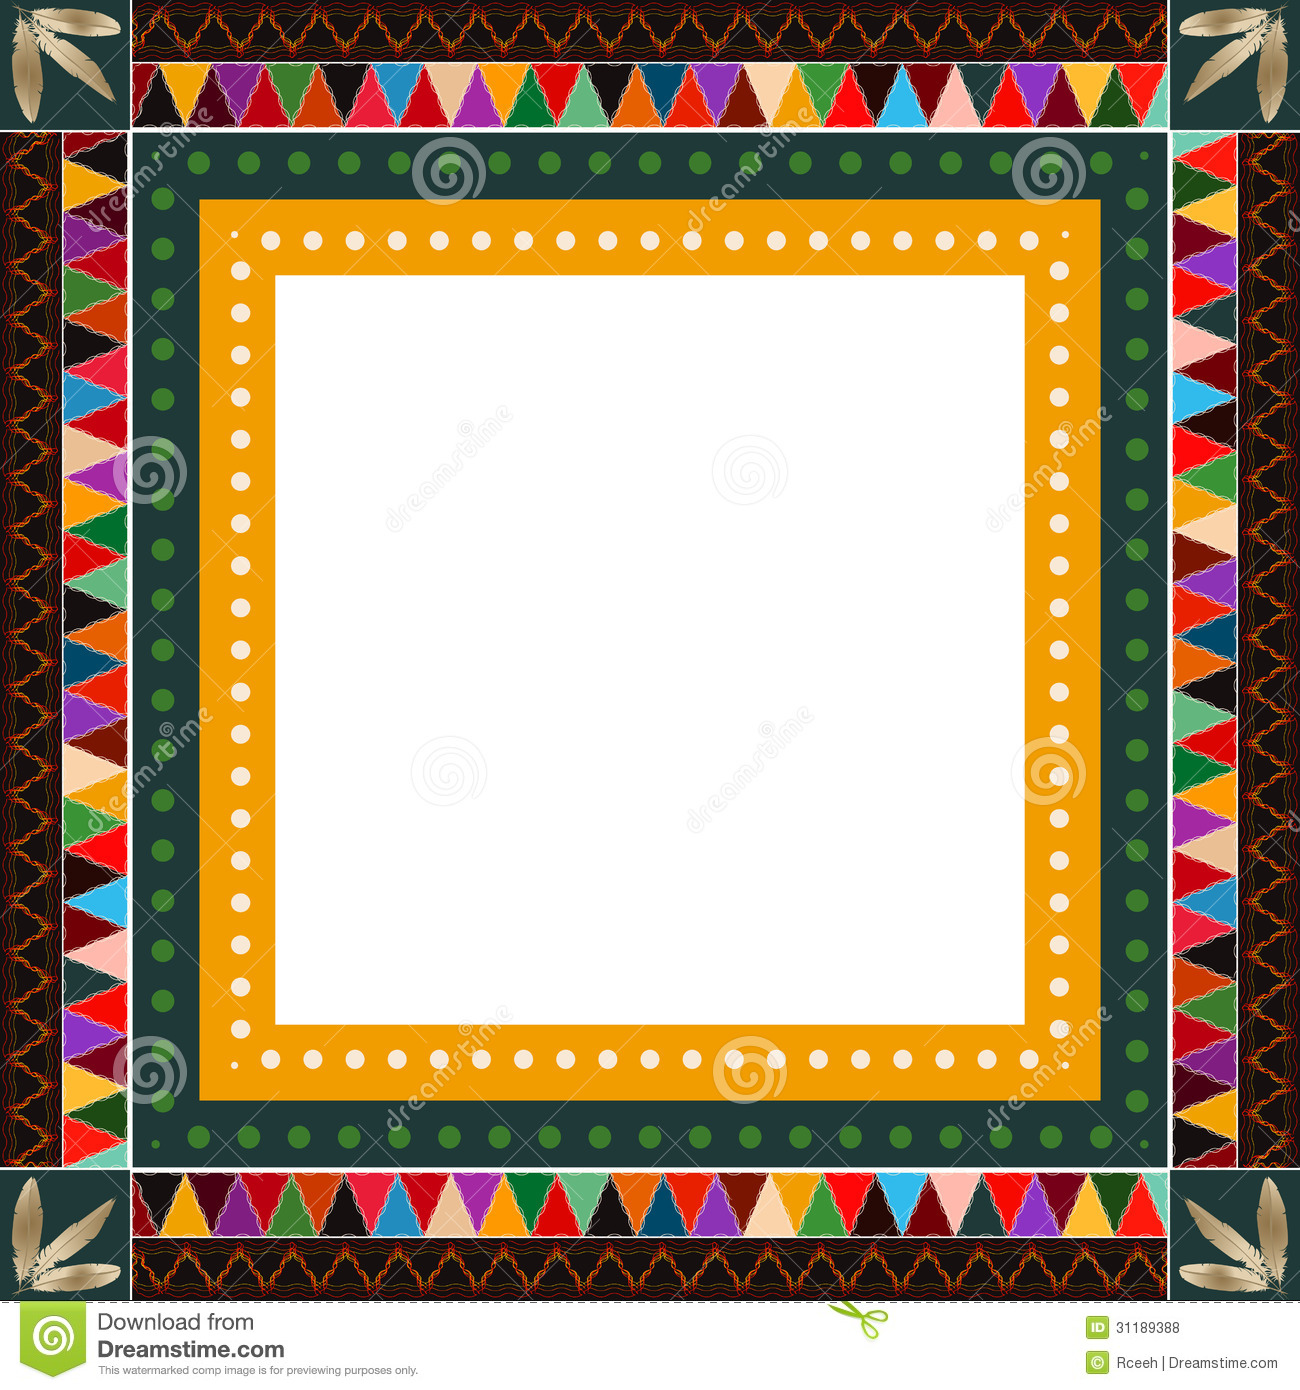 native art wallpaper border - photo #25